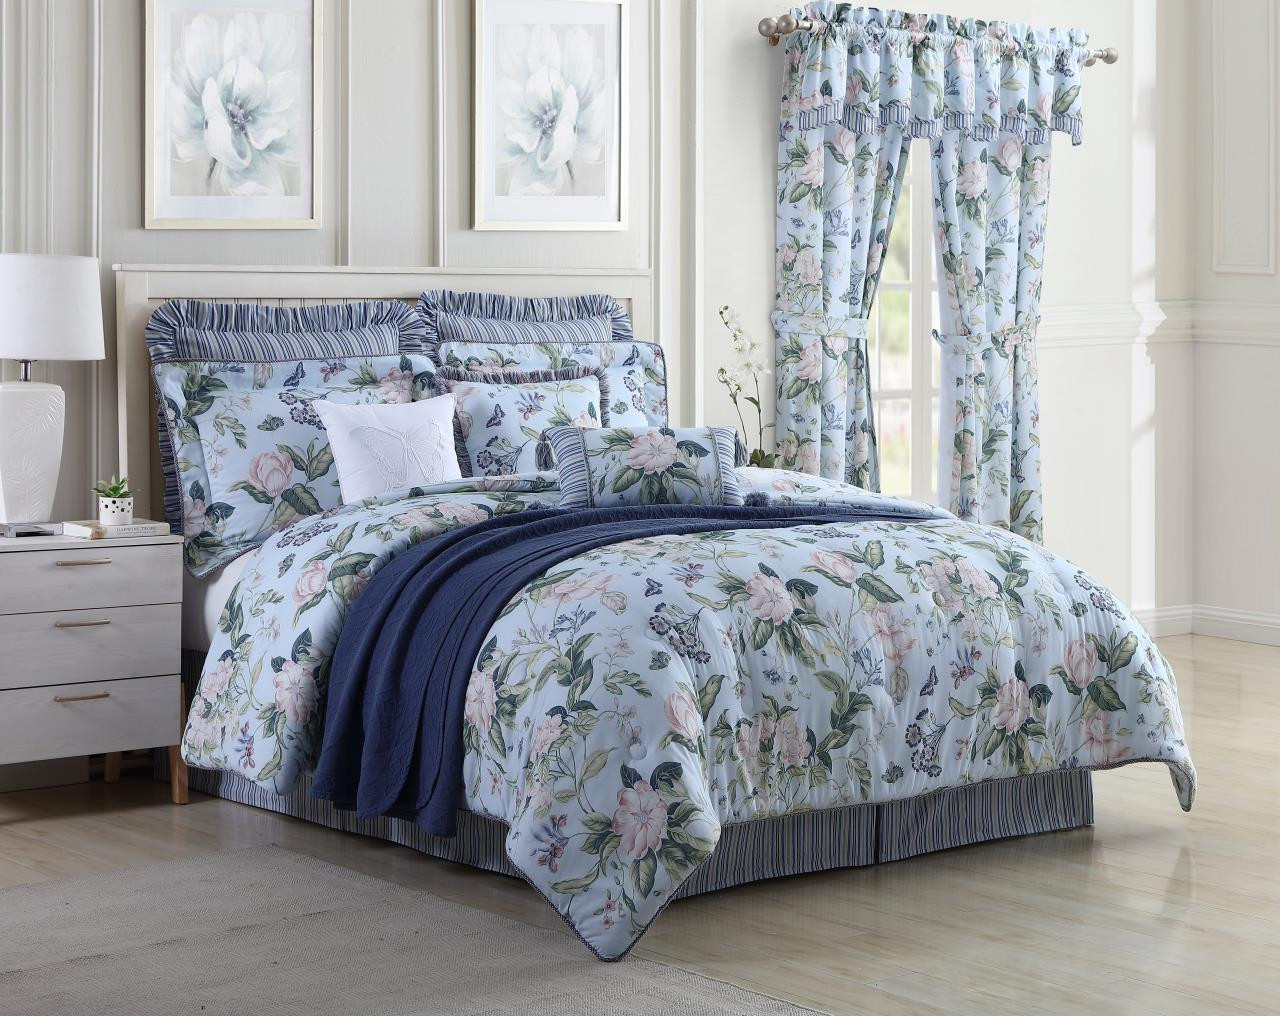 Garden Images Blue Comforter Collection -